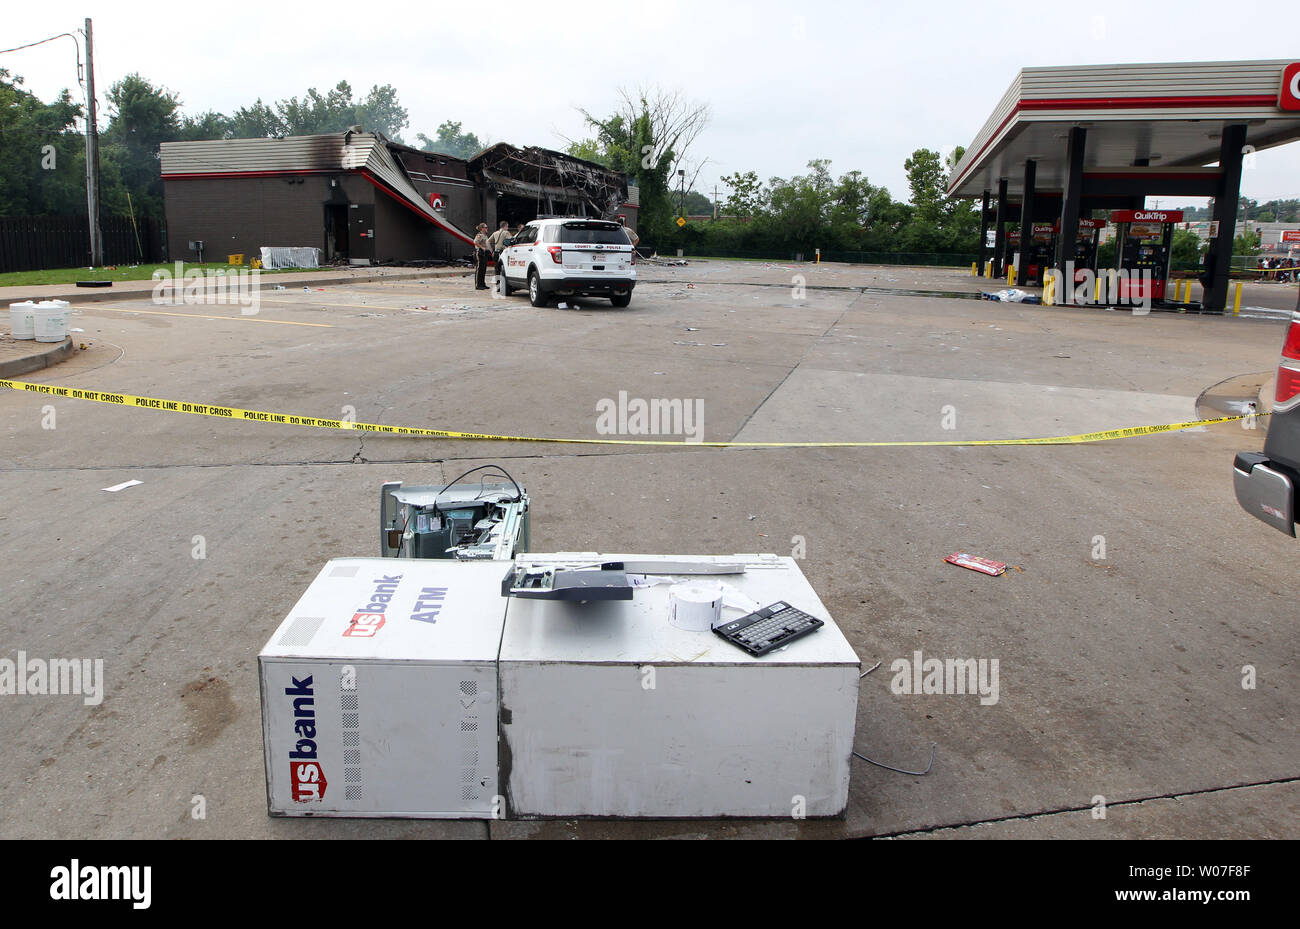 St. Louis County Police stand guard over a QuickTrip Gas staton that was burned, while a ATM machine lays in the parking lot following a night of looting, rioting and arsons in Ferguson, Missouri on August 11, 2014. People are upset because of the Ferguson Police shooting and death of an unarmed black teenager Michael Brown on August 9, 2014. In all about 20 businesses sustained damage after a candlelight vigil turned violent.   UPI/Bill Greenblatt Stock Photo